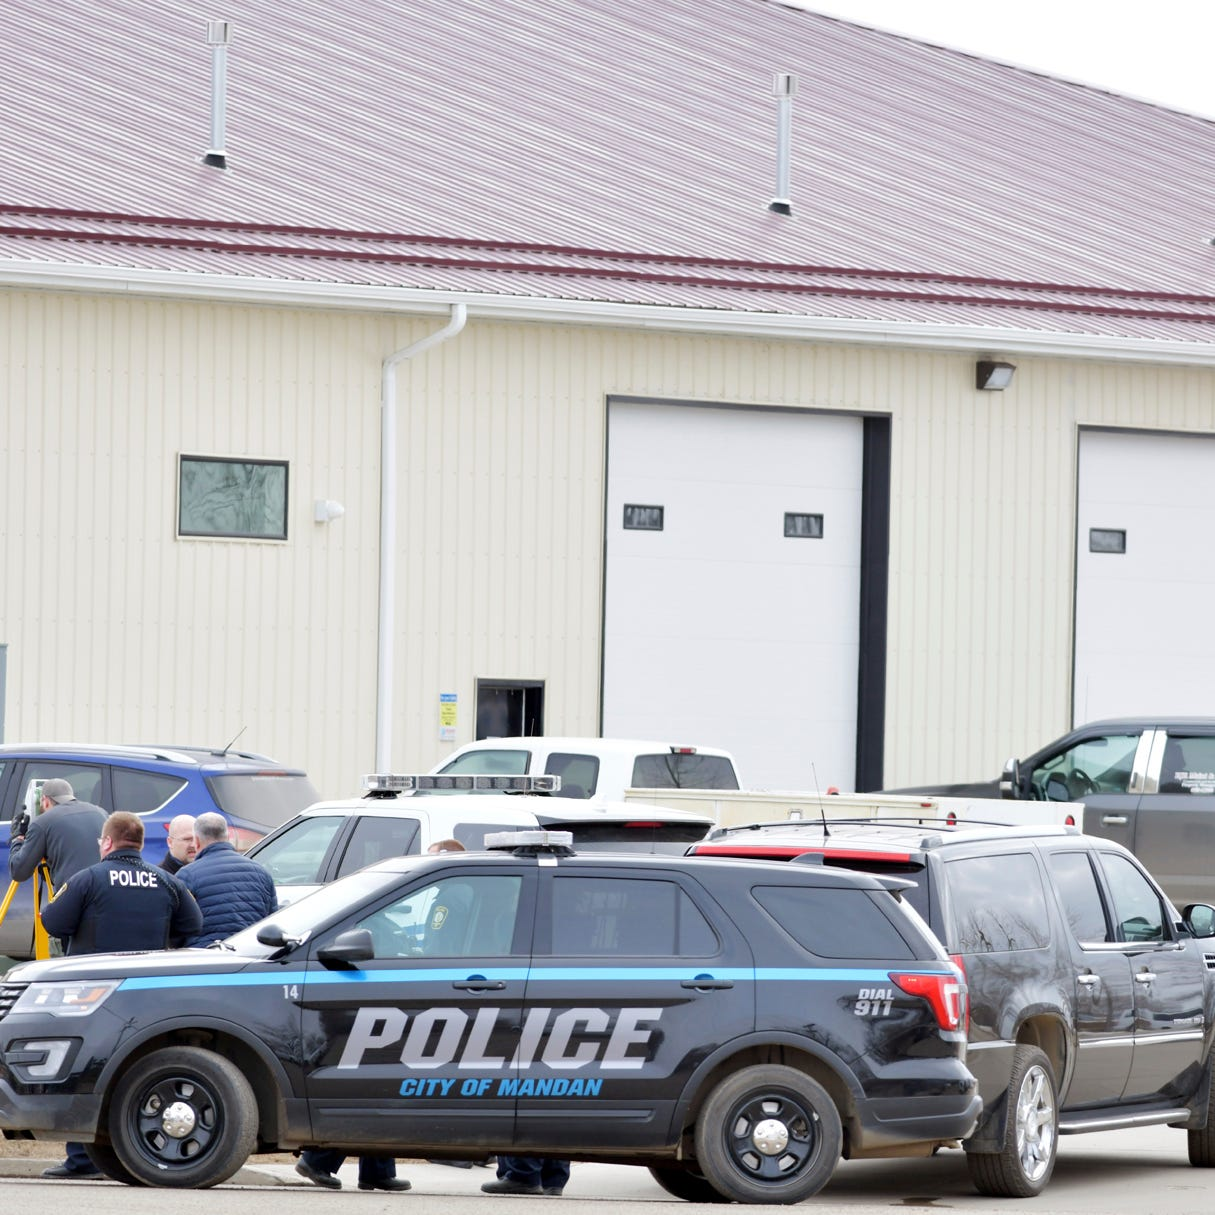 4 dead in 'multiple homicide' at North Dakota business